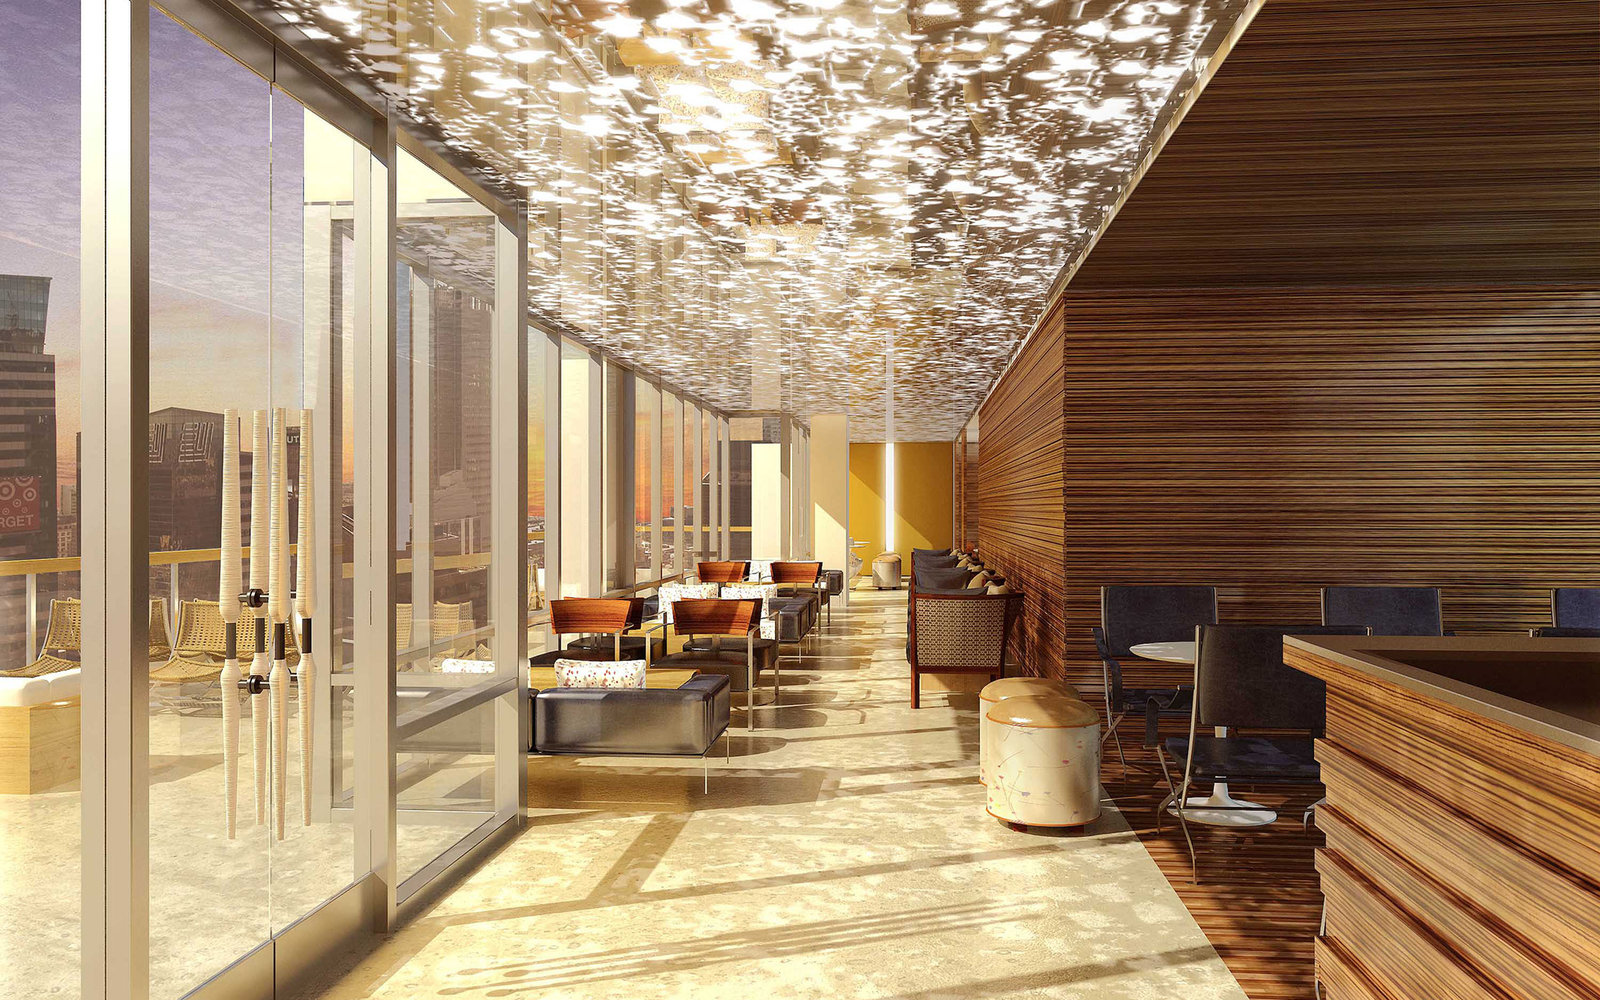 FOR DEC 10, 2013 - COMMERCIAL REAL ESTATE SECTION  ((handouts))